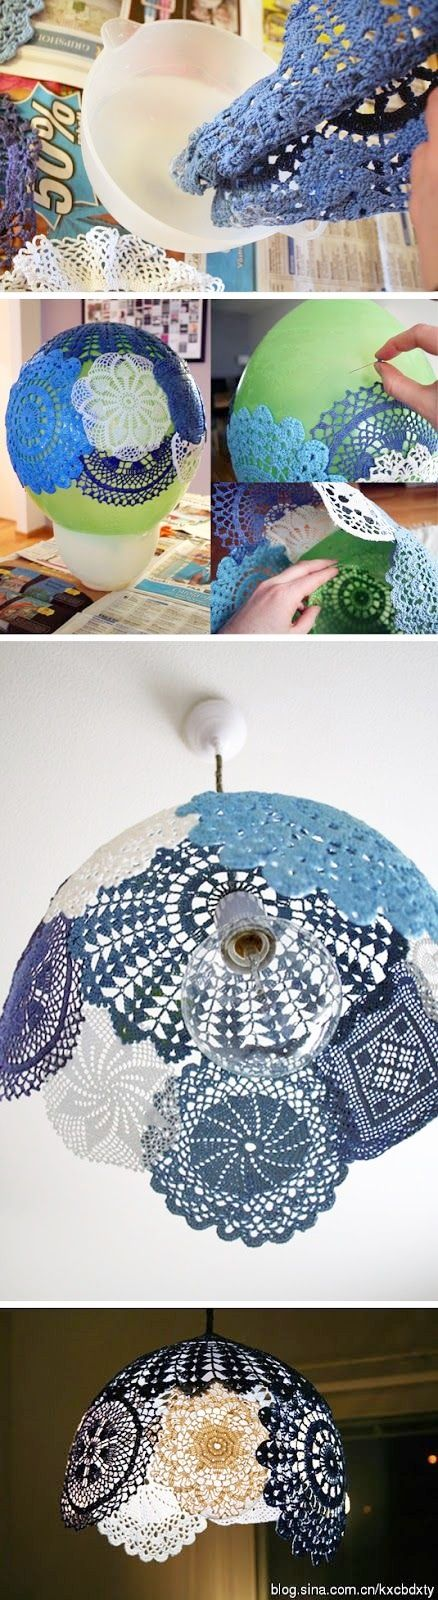 decoracao-com-crochet (6)